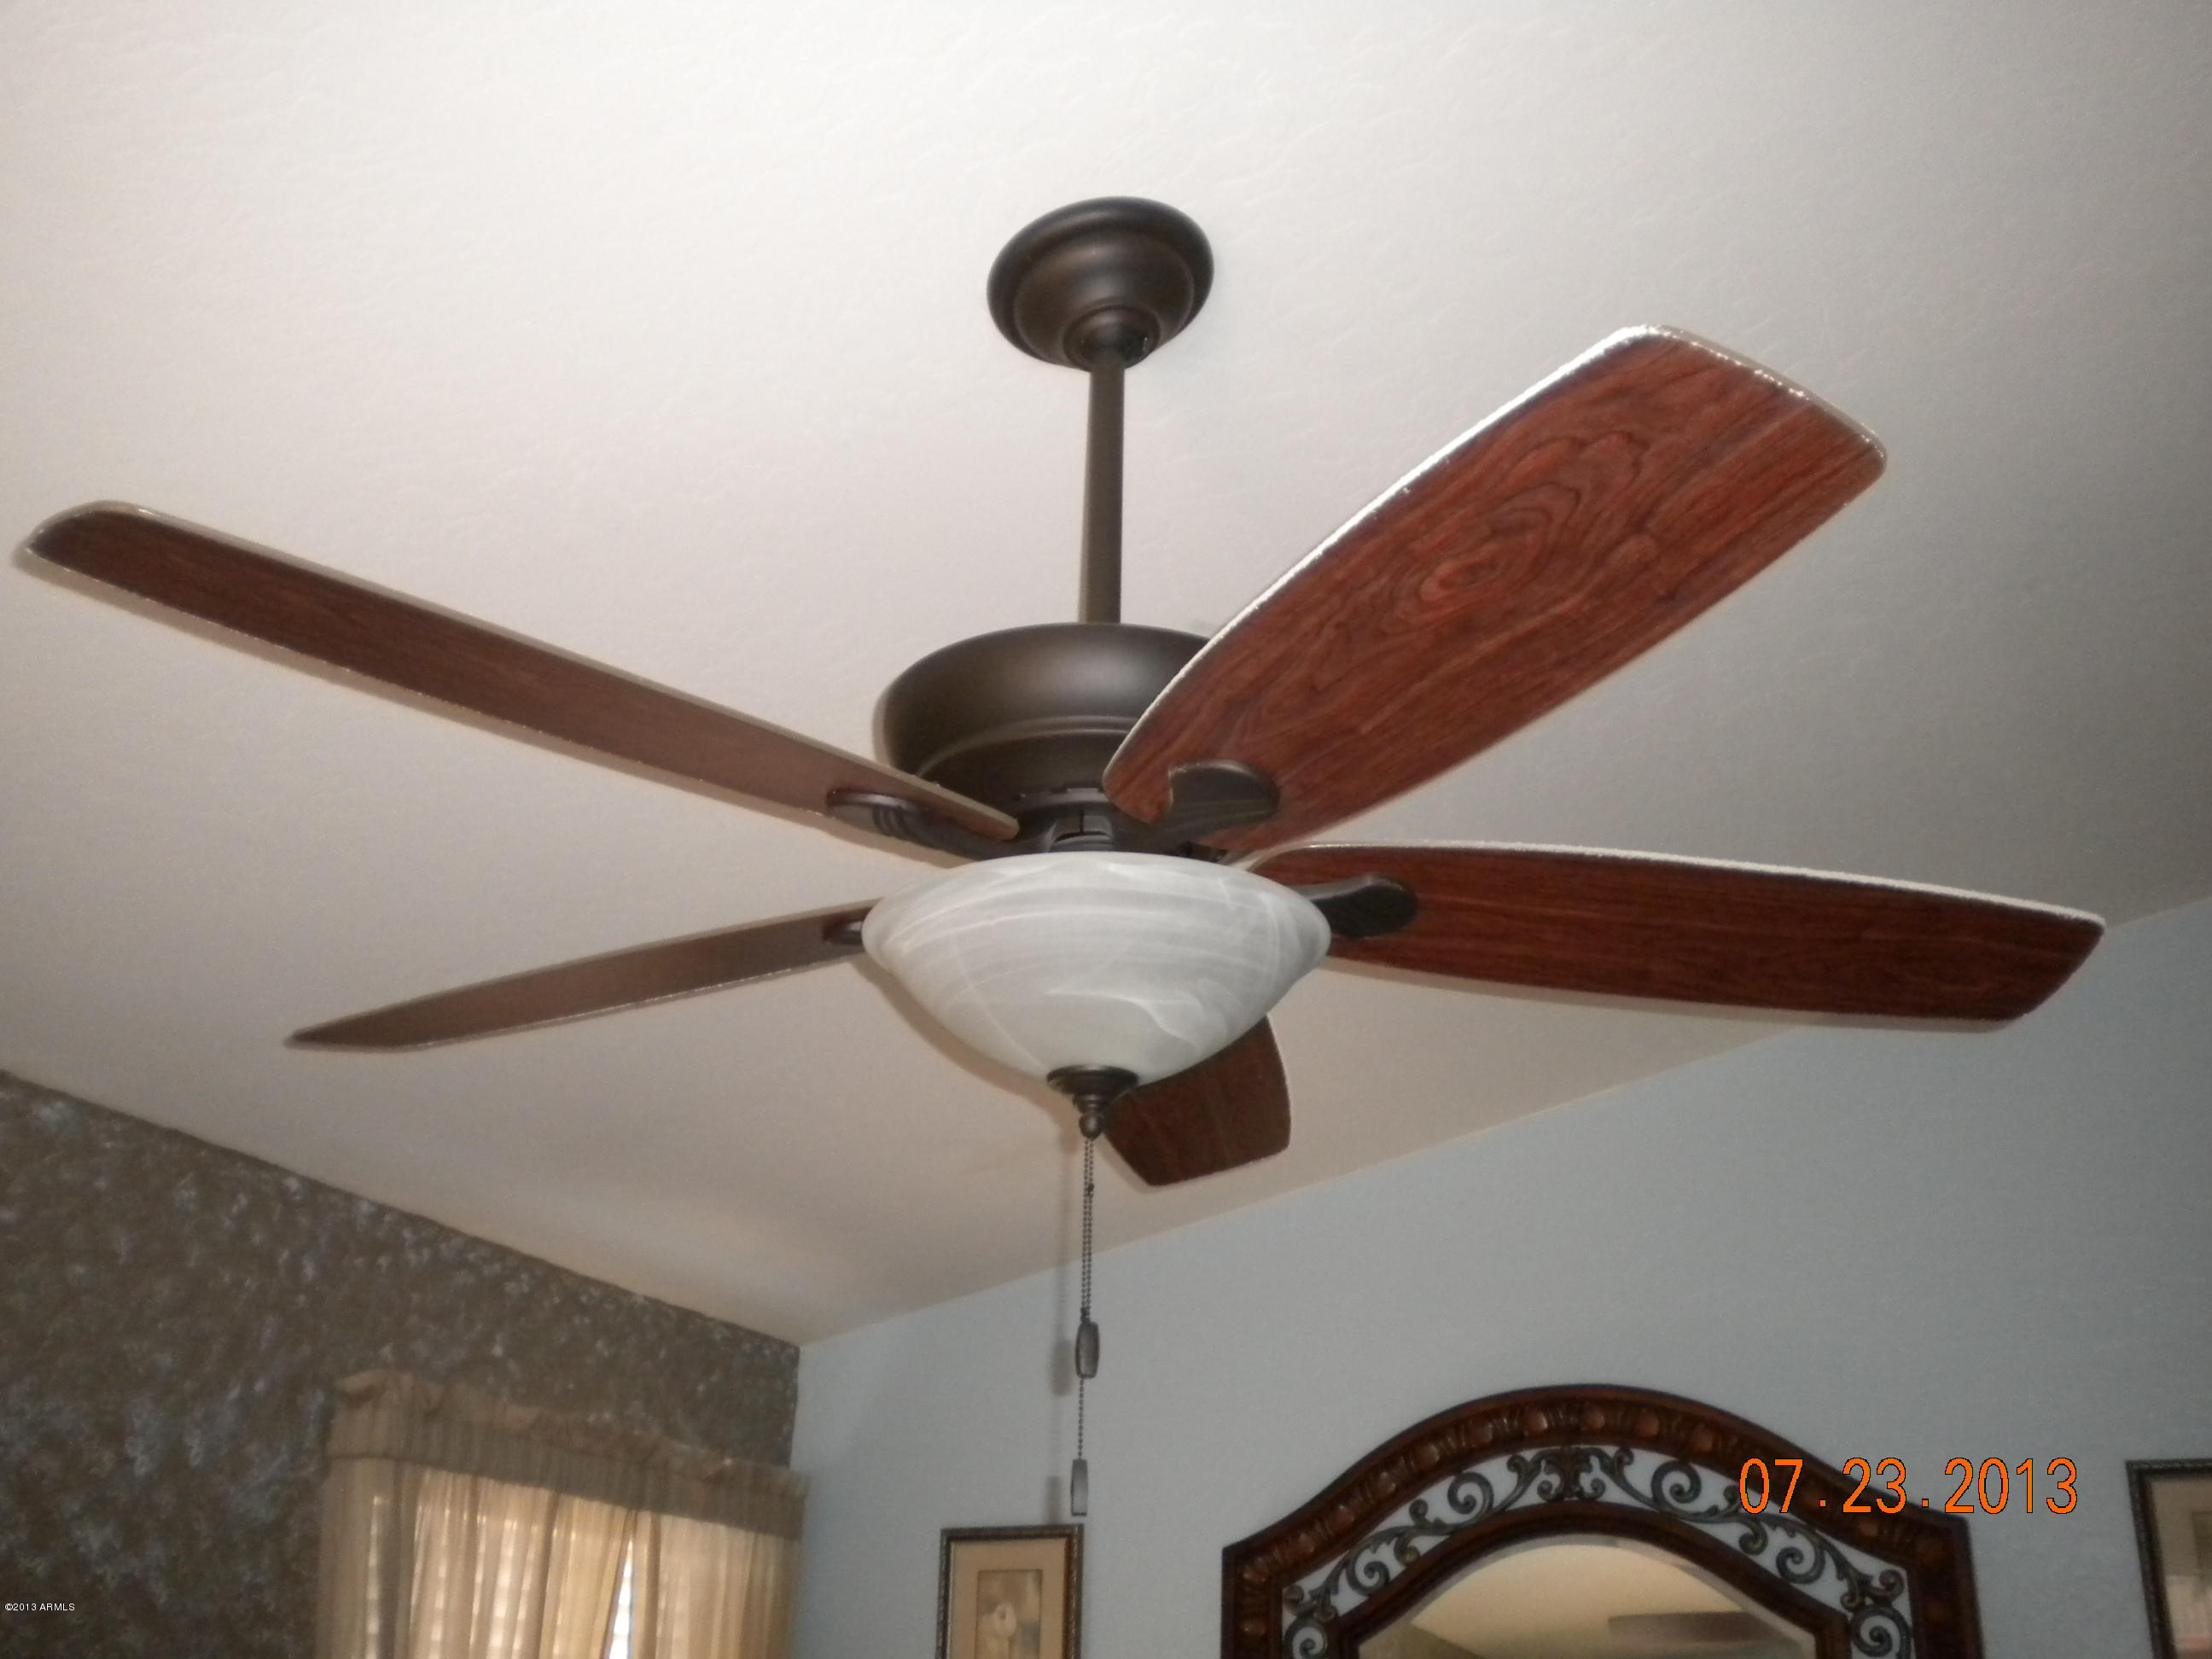 Upscale Ceiling Fan 511 E Cantebria Drive Gilbert Az 85296 Mls 4972131 The Fred